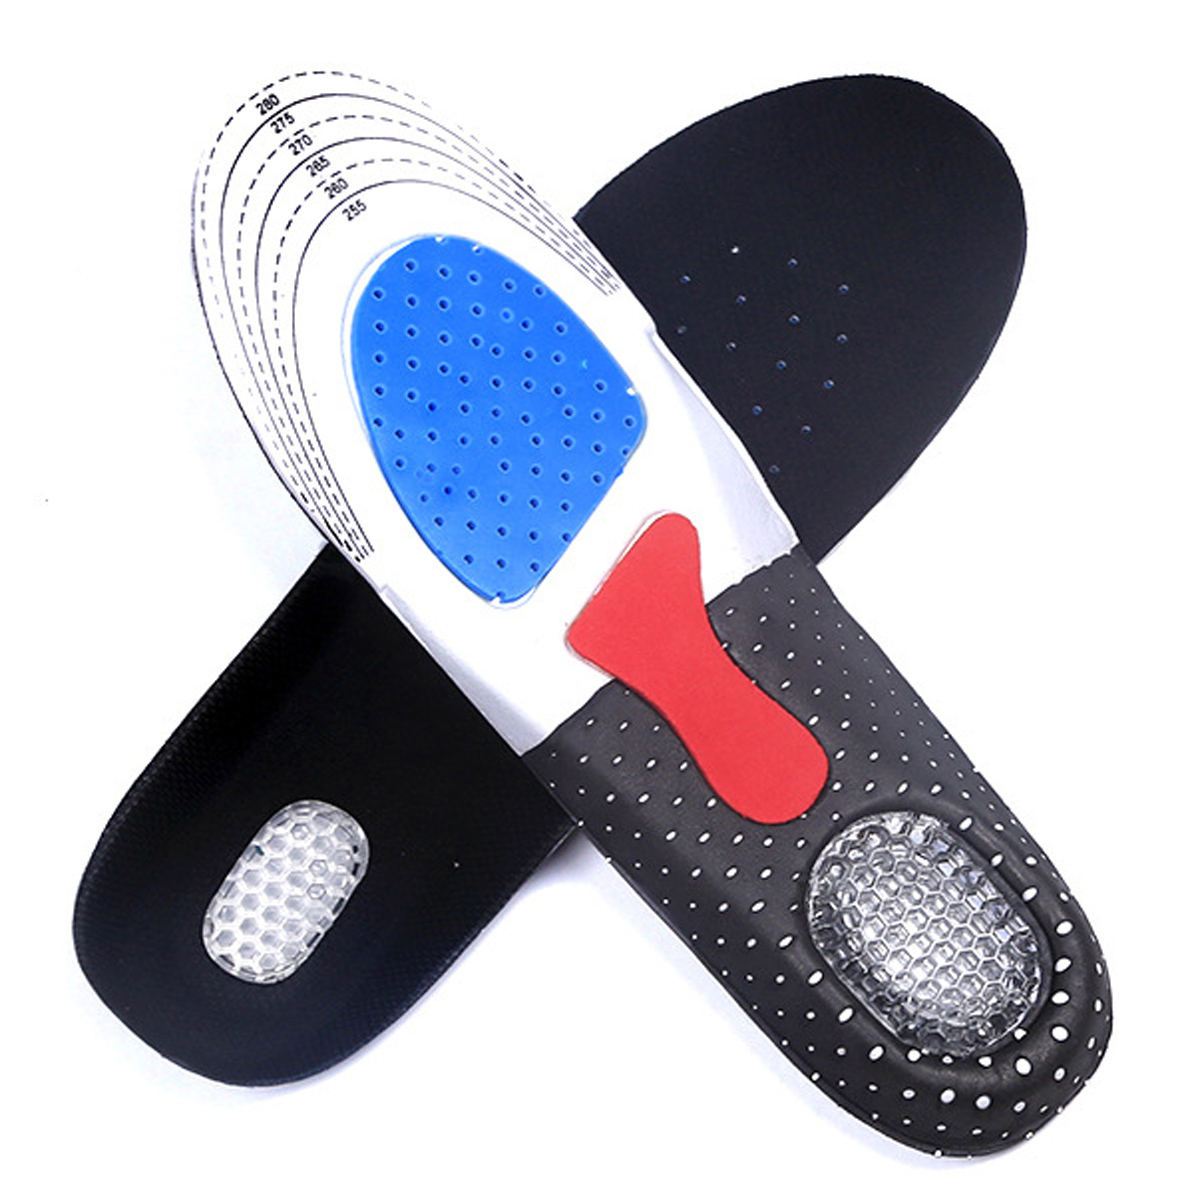 Unisex Gel Orthotic Arch Support Sport Shoe Pad Sport Running Insoles Insert Shoe Pad Arch Support Cushion for US 6-10